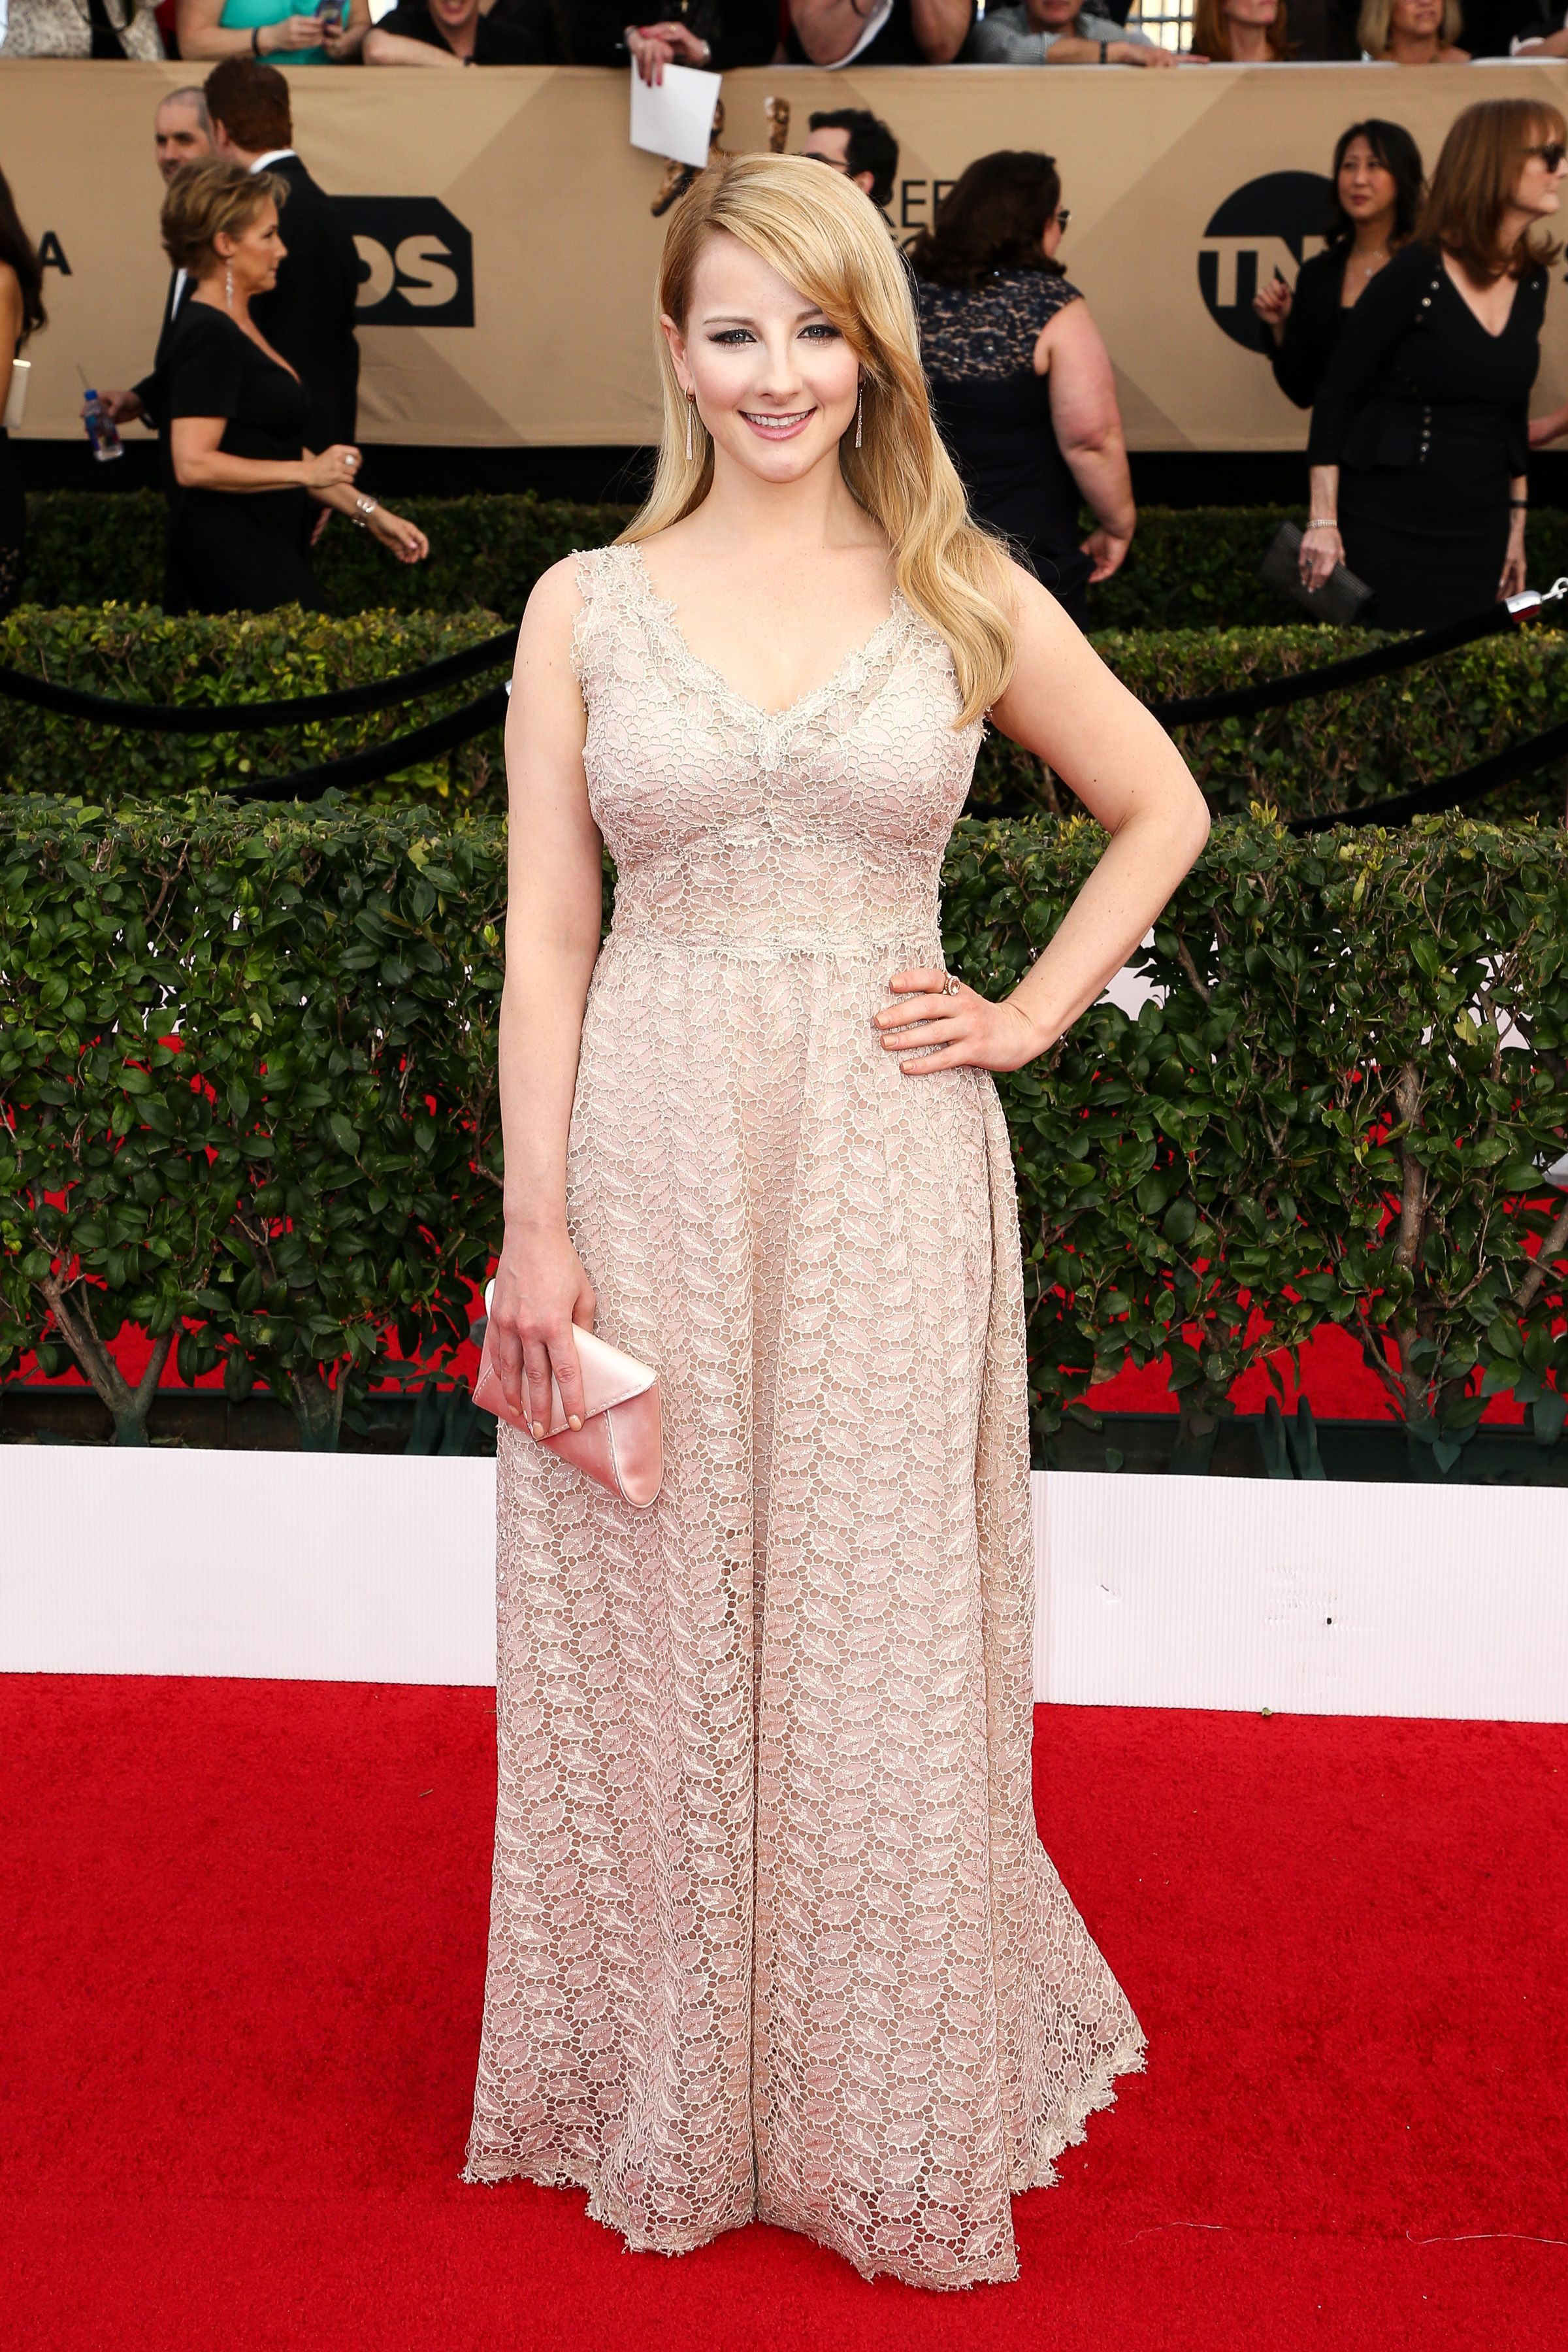 'The Big Bang Theory' Star Melissa Rauch Announces Pregnancy And Reflects On Miscarriage - Fame10